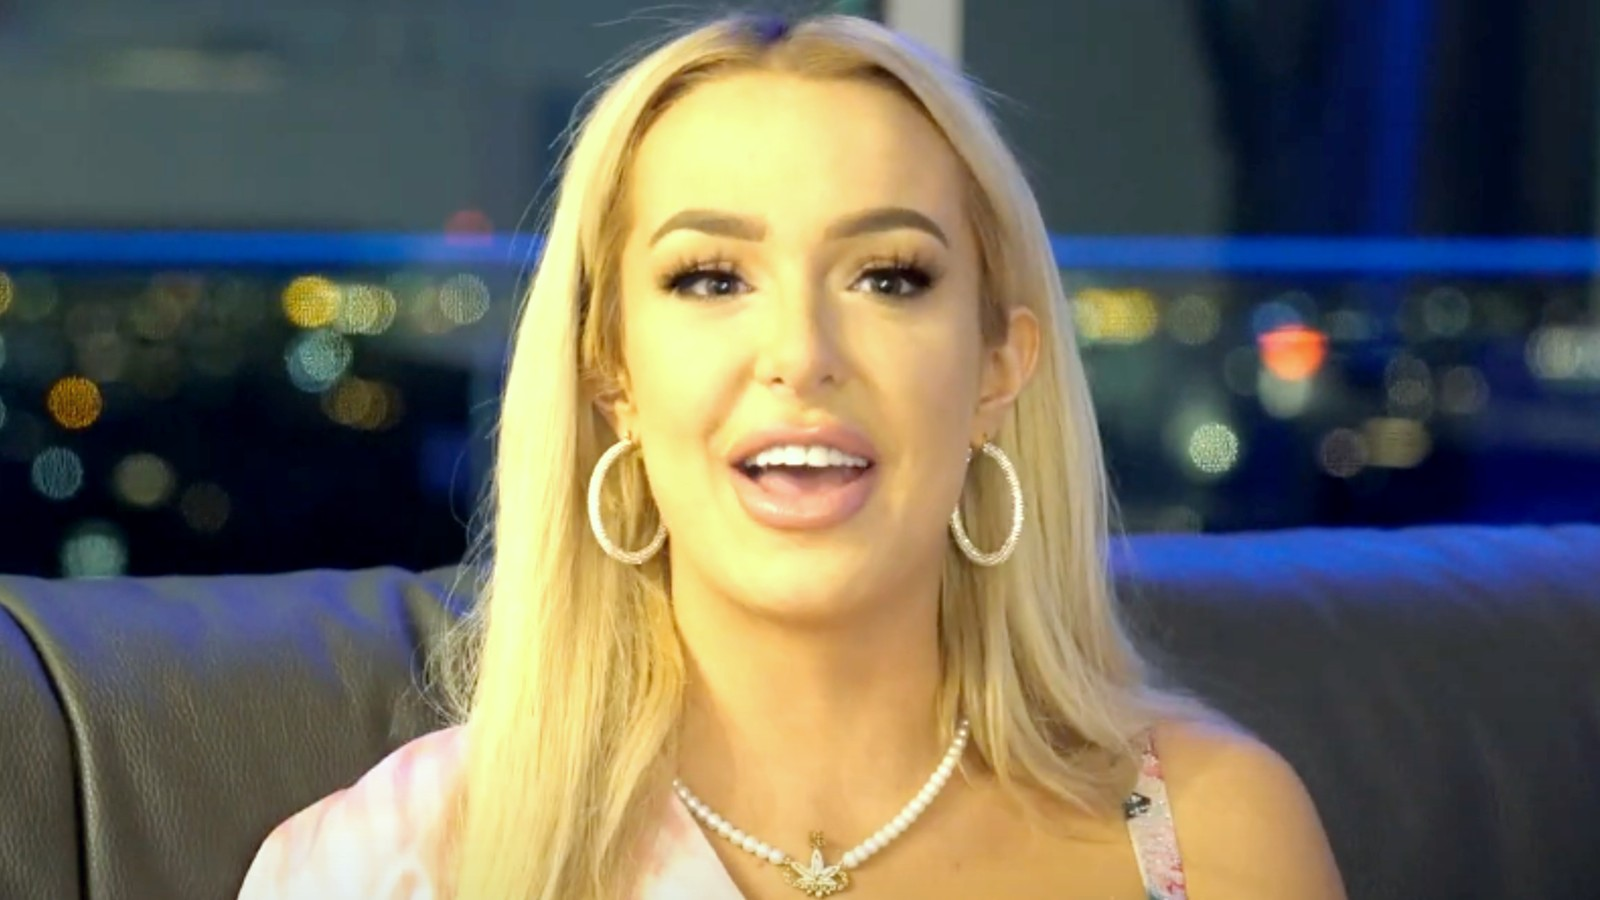 Tana Mongeau sits facing the camera in a storytime video